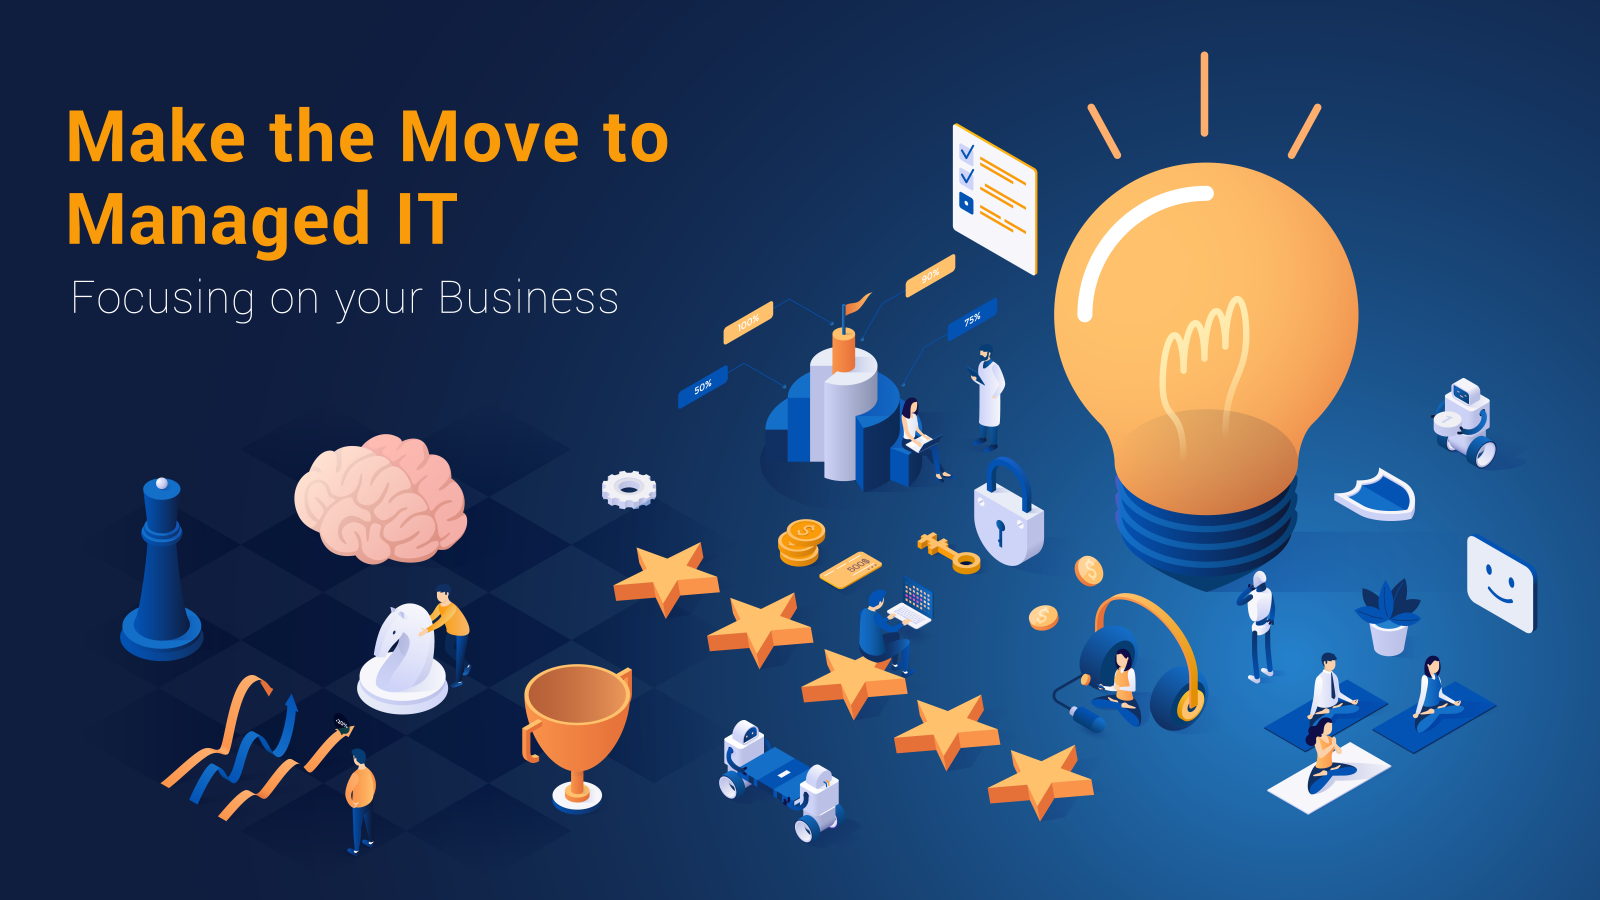 Make the Move to Managed IT